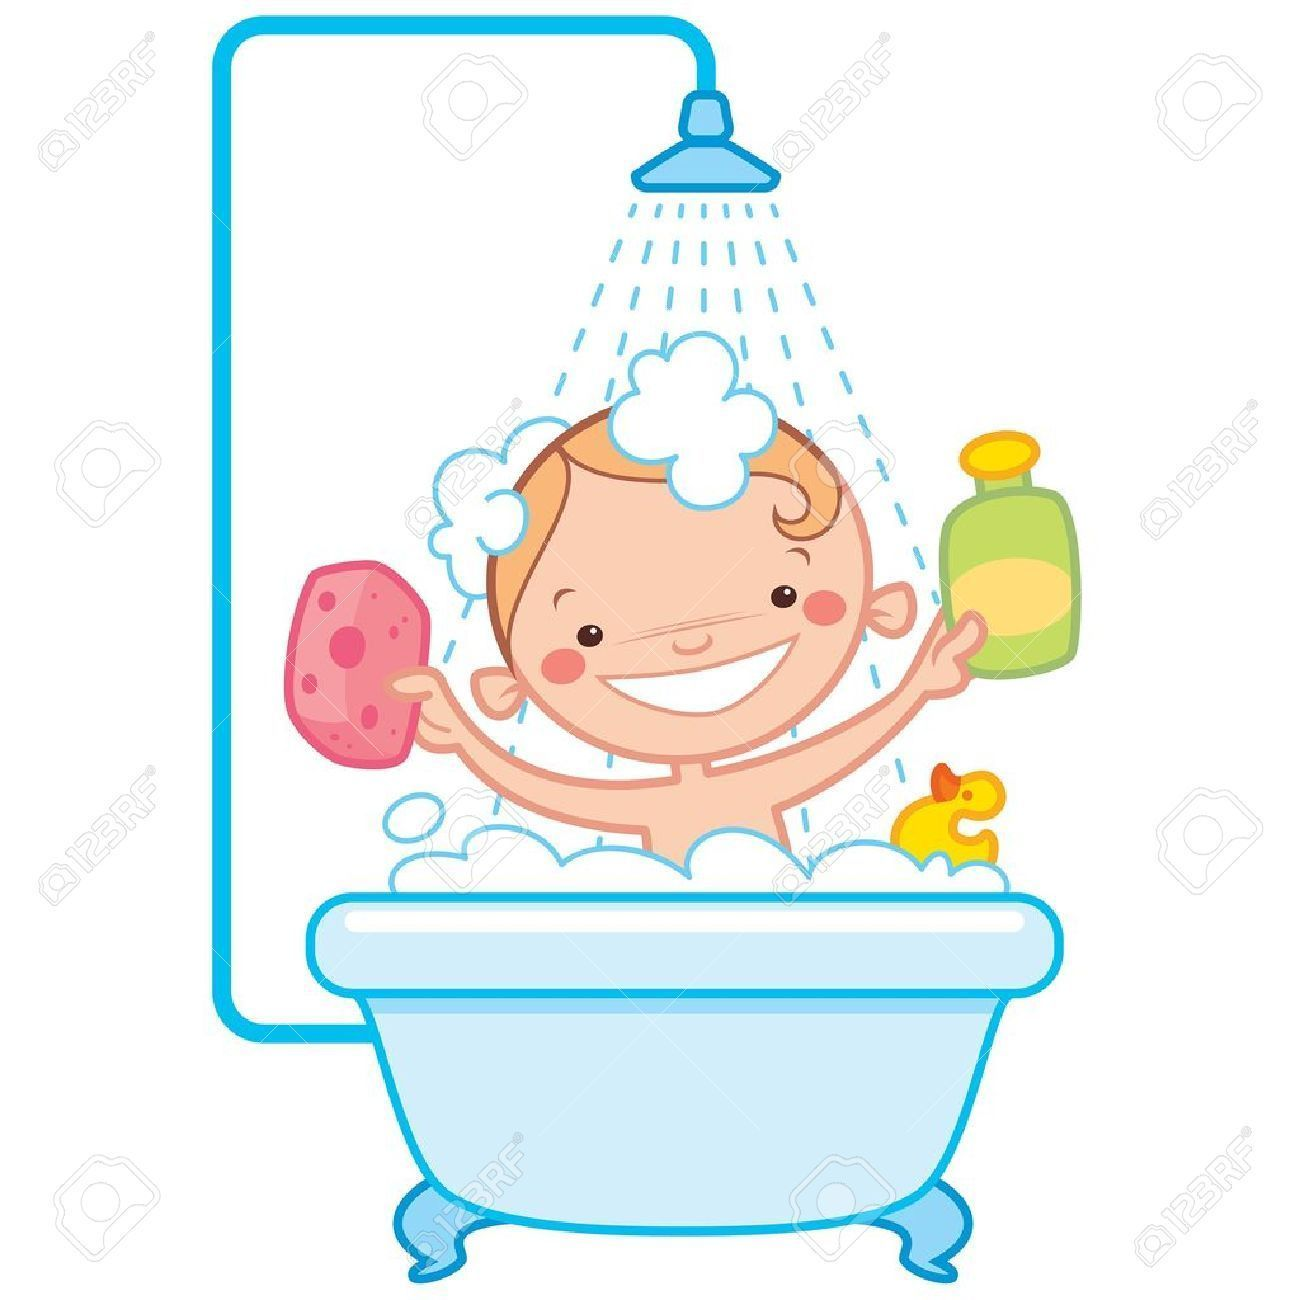 Bathtub Clipart Bath Soap Pencil And In Color Best Baby Wash Bottle.